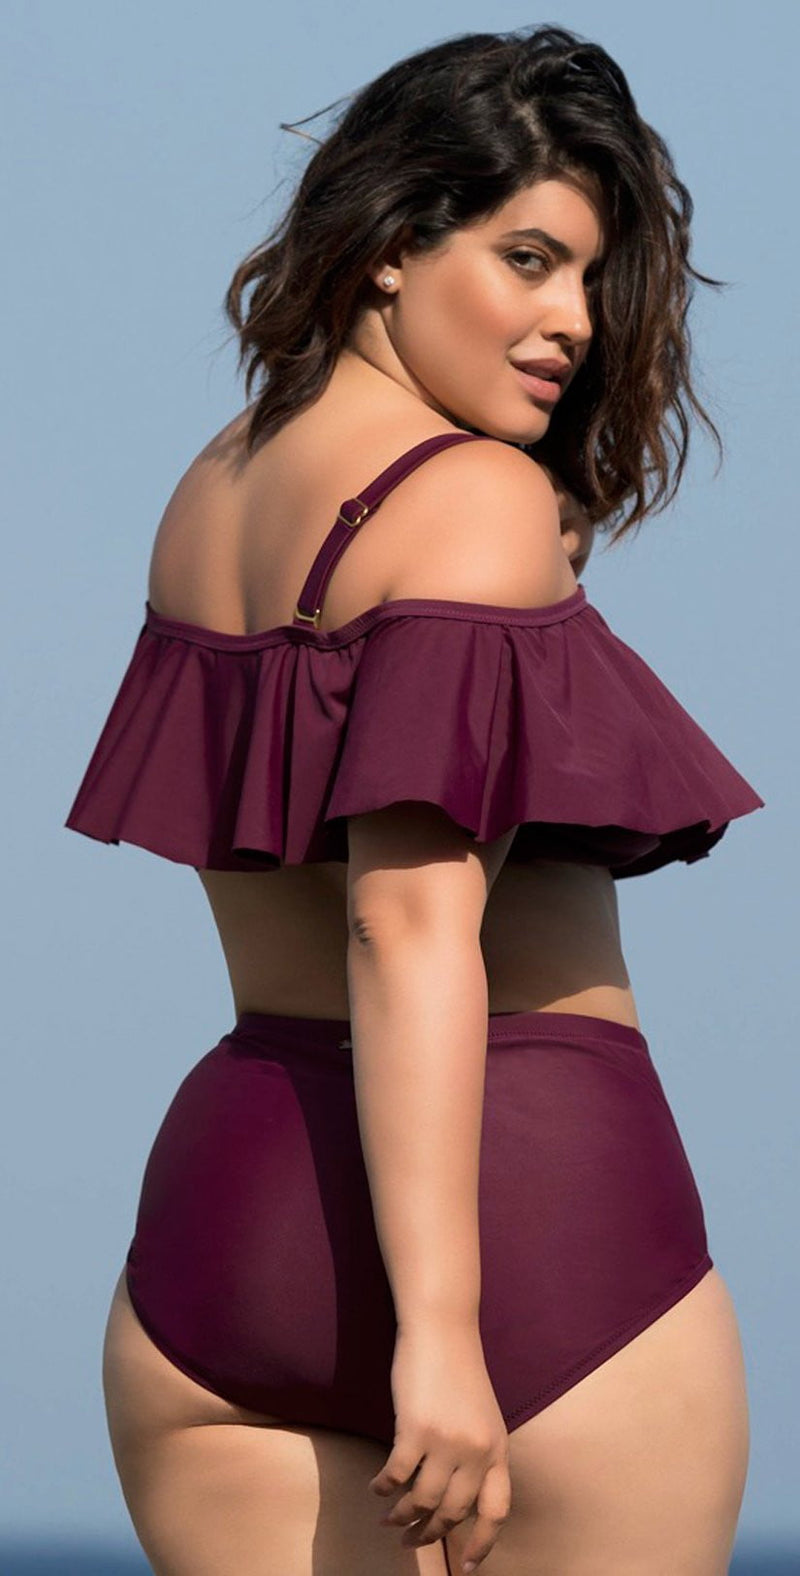 Raisins Curve Tortuga Flounce Top in Maroon Y840027-MAR: